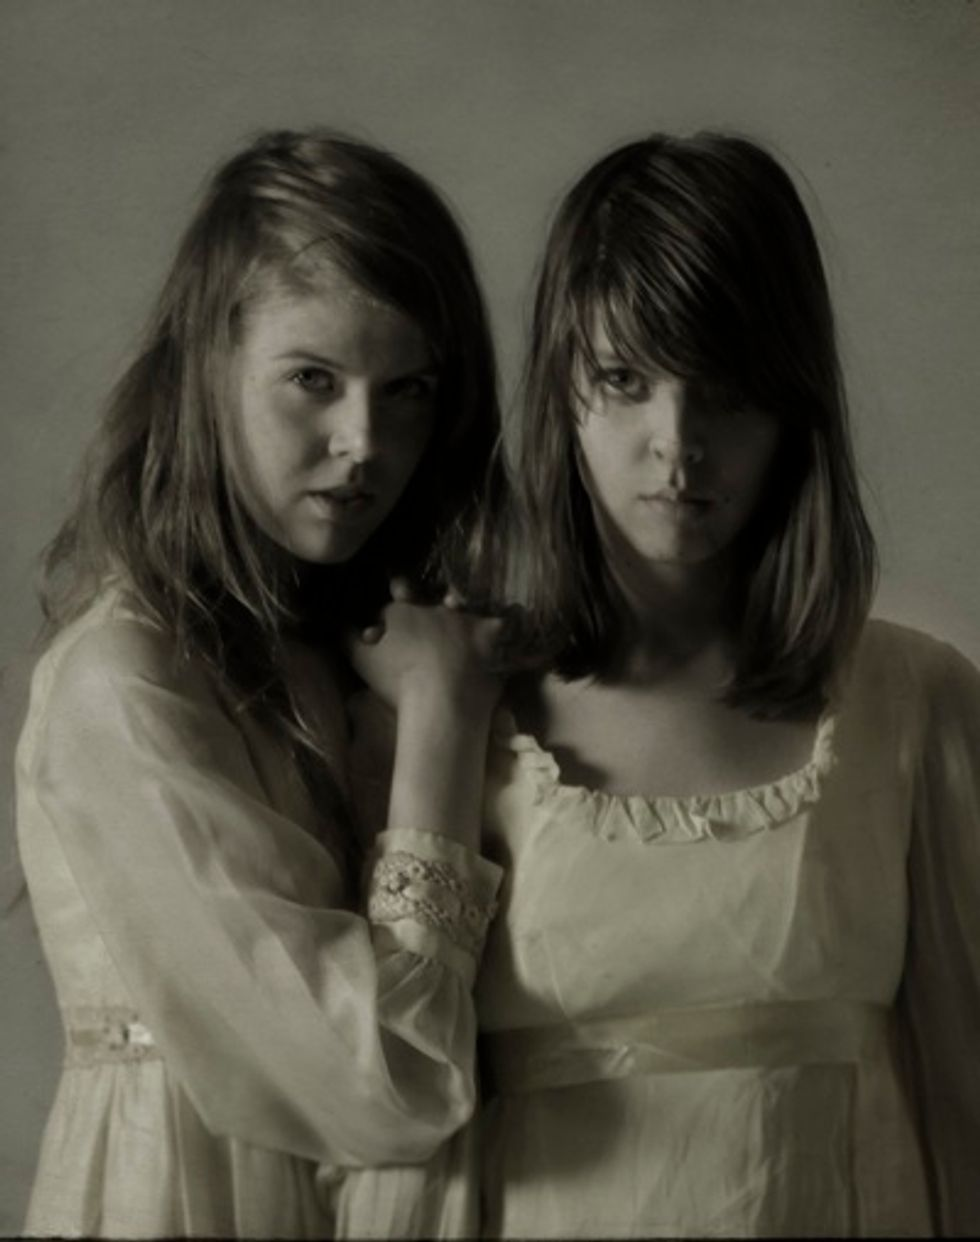 Bring in the Noise, Bring in the Cute with Icelandic Twin-Sister Band Pascal Pinon